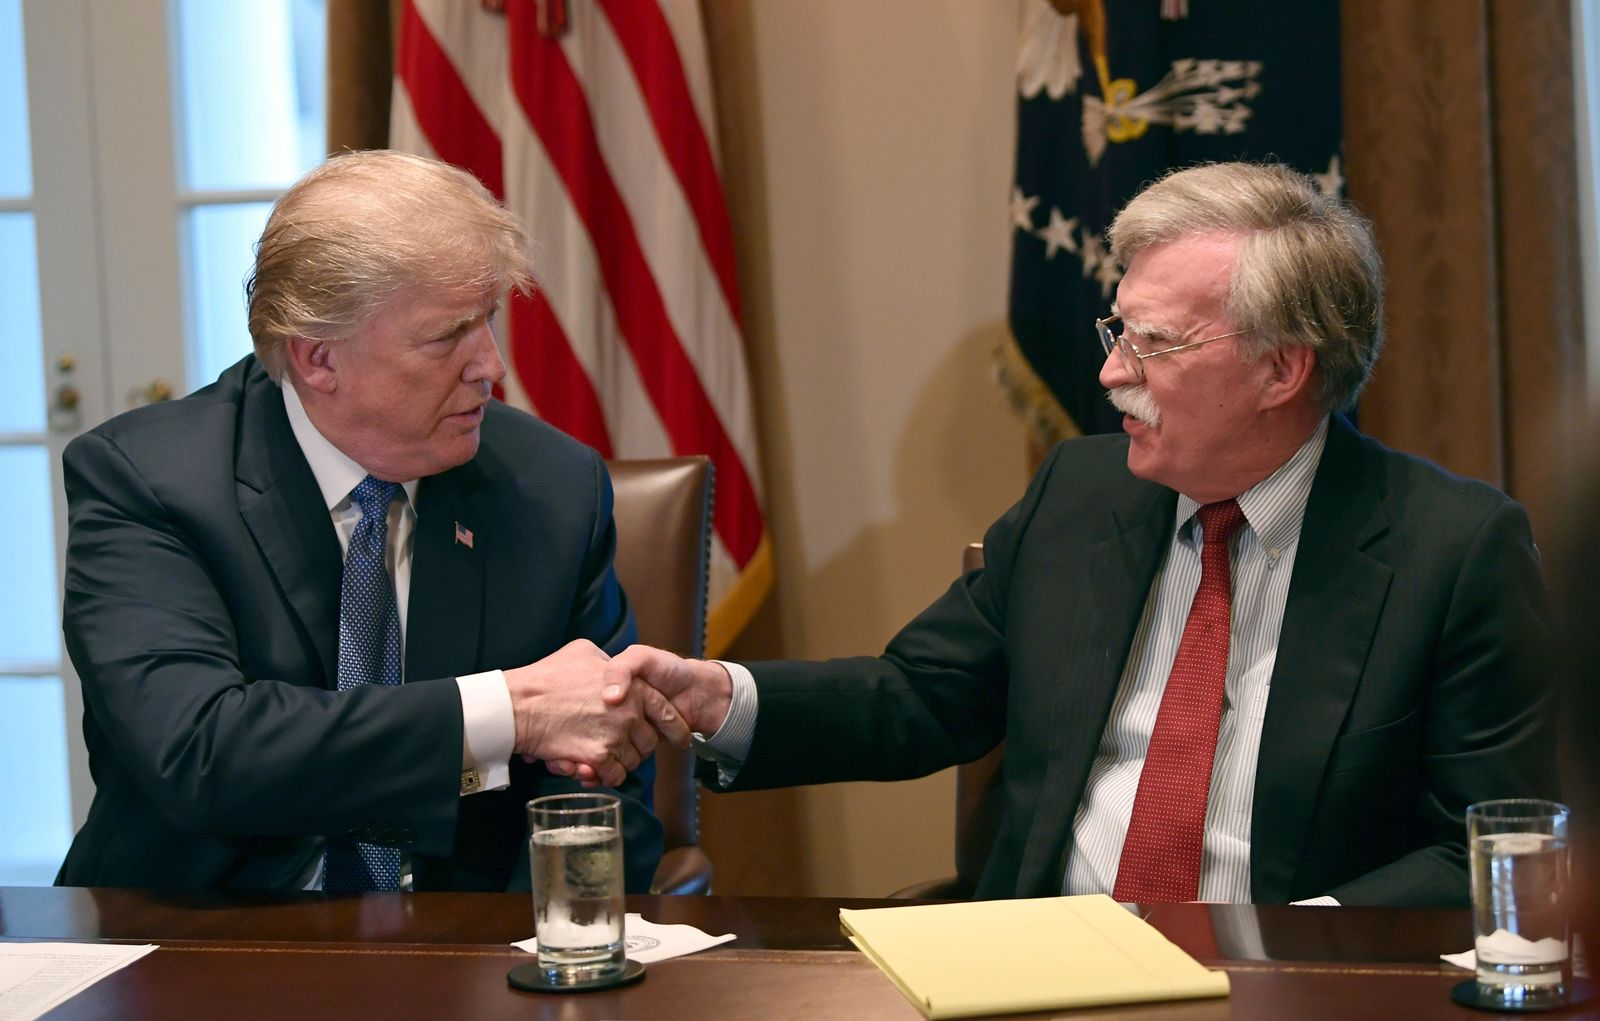 FILE - In this April 9, 2018 file photo, President Donald Trump, left, shakes hands with national security adviser John Bolton in the Cabinet Room of the White House in Washington at the start of a meeting with military leaders. (AP Photo/Susan Walsh)